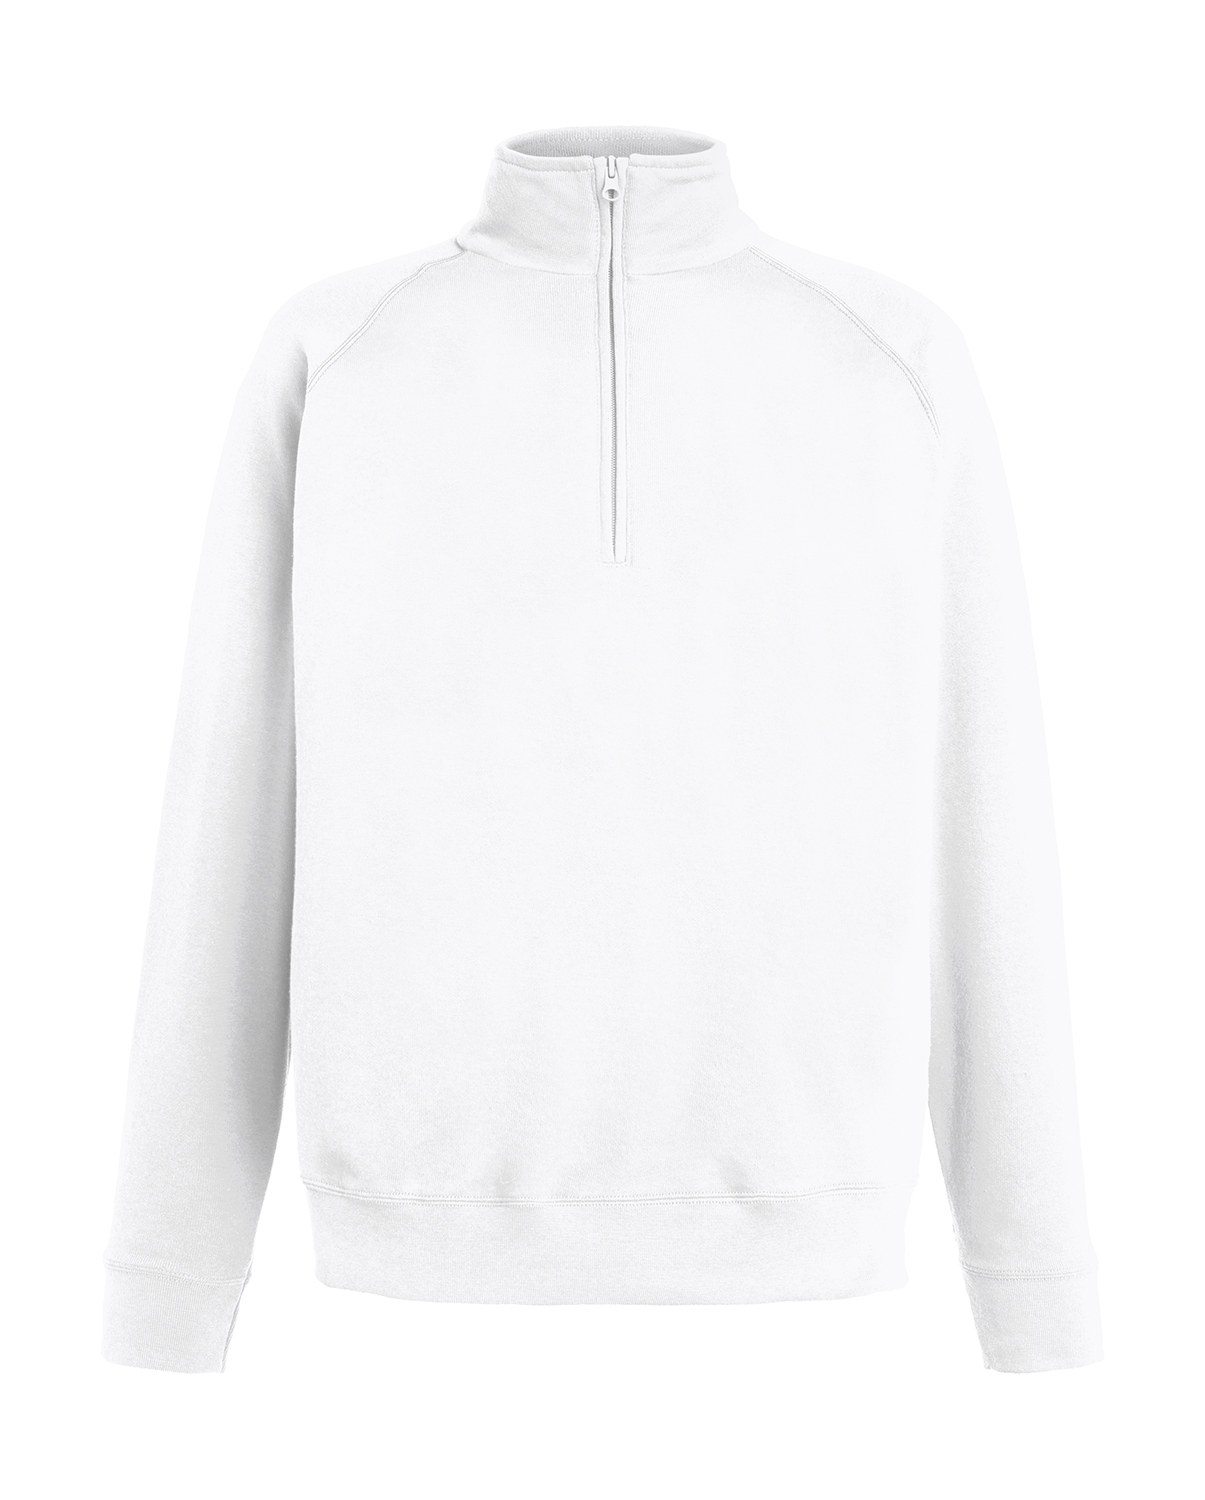 FruitOfLoom Lightweight Zip Neck Sweat